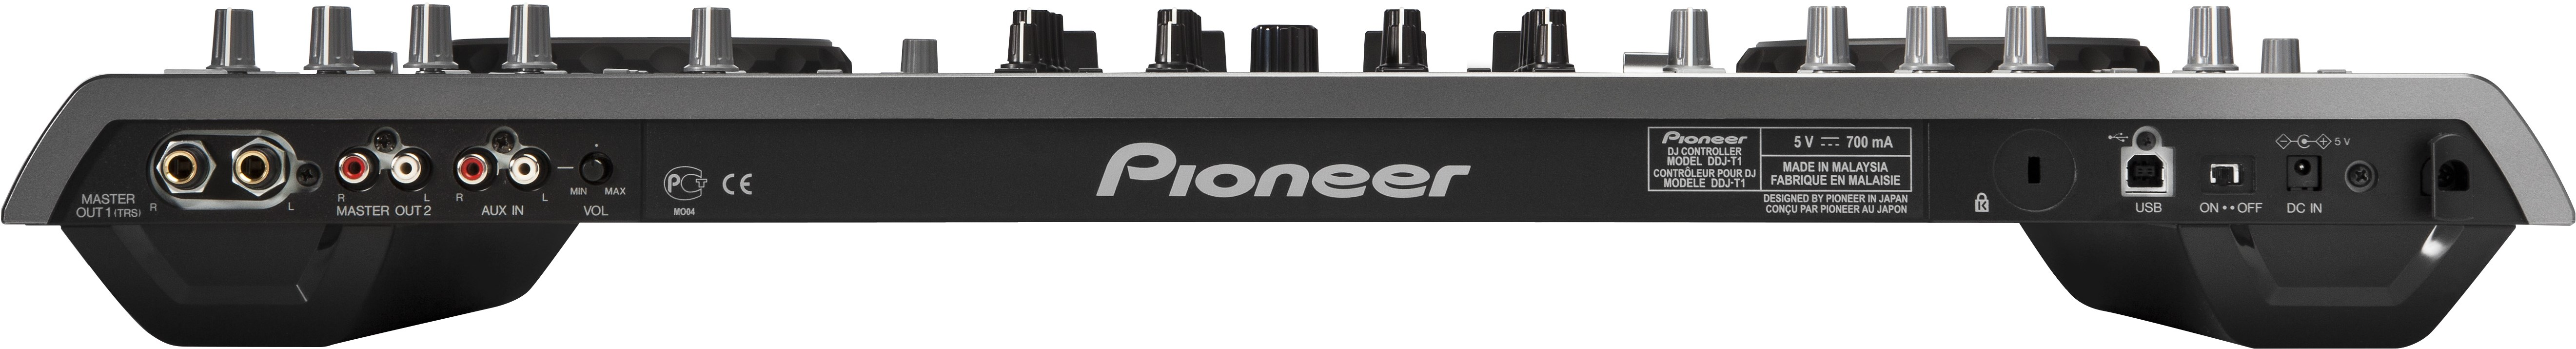 Directory Listing of Pioneer - DDJ-T1/ (Soundlighteffect Tech Files)